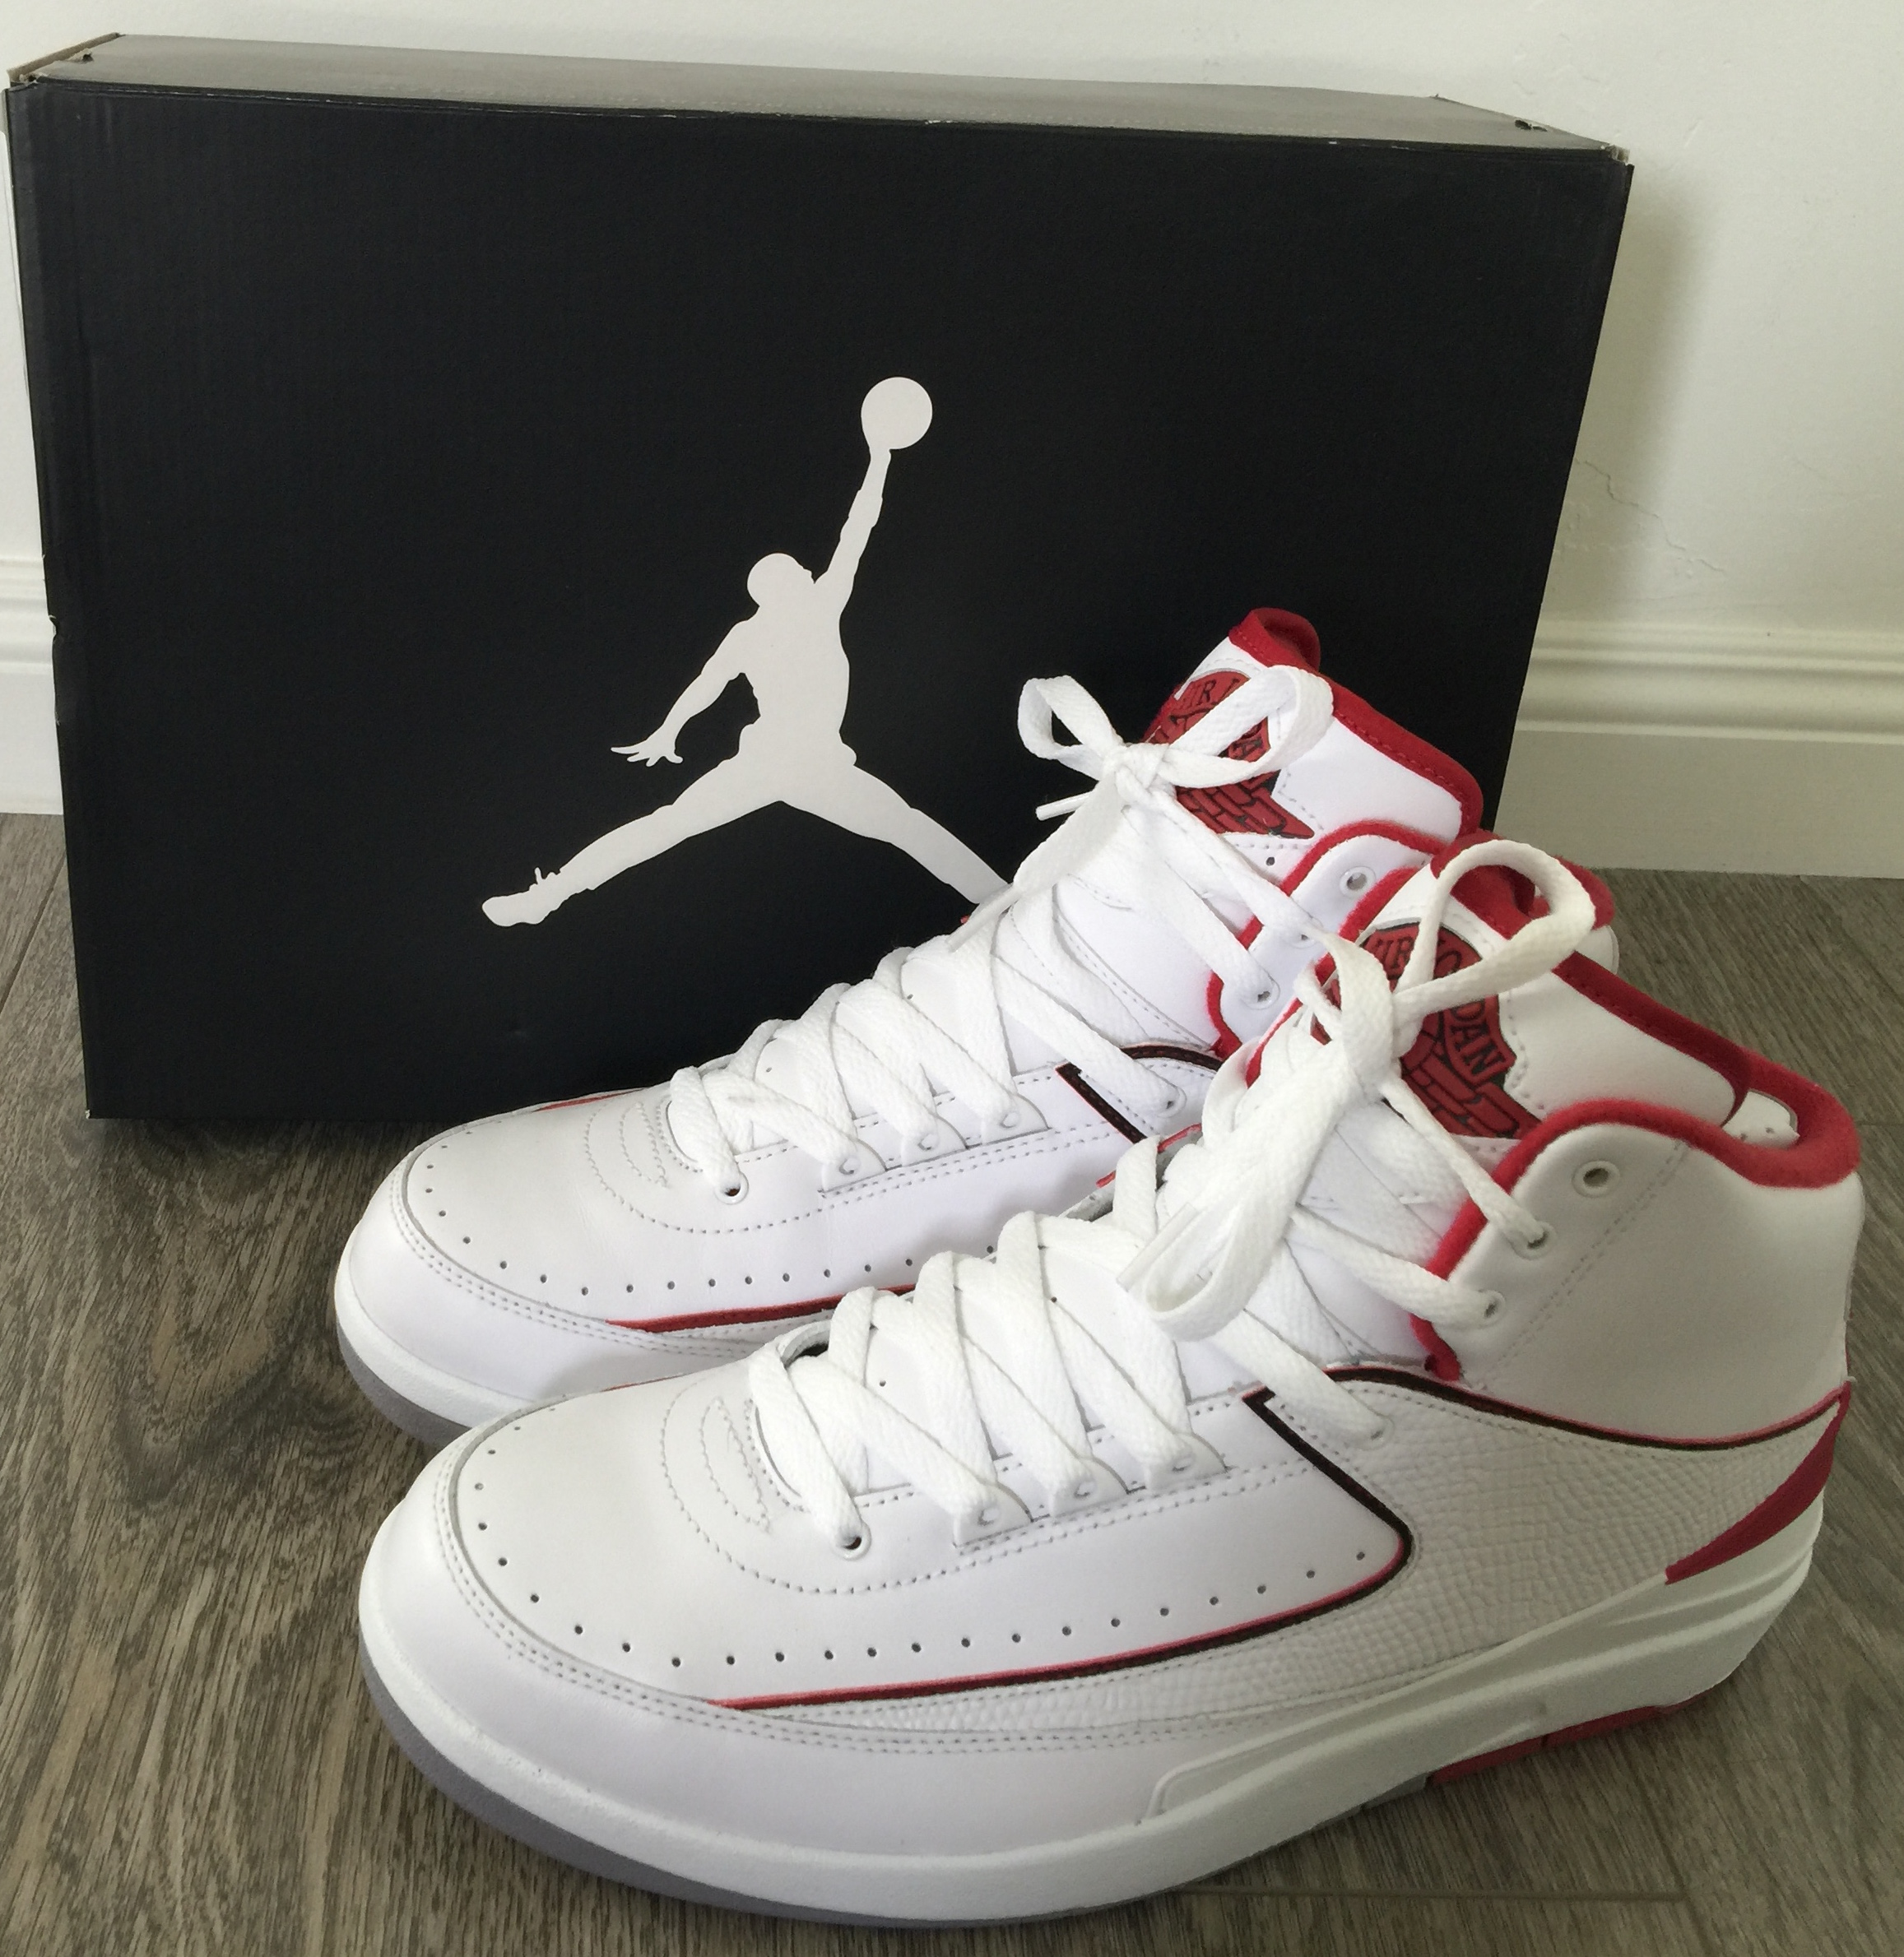 Jordan Shoes Free Shipping